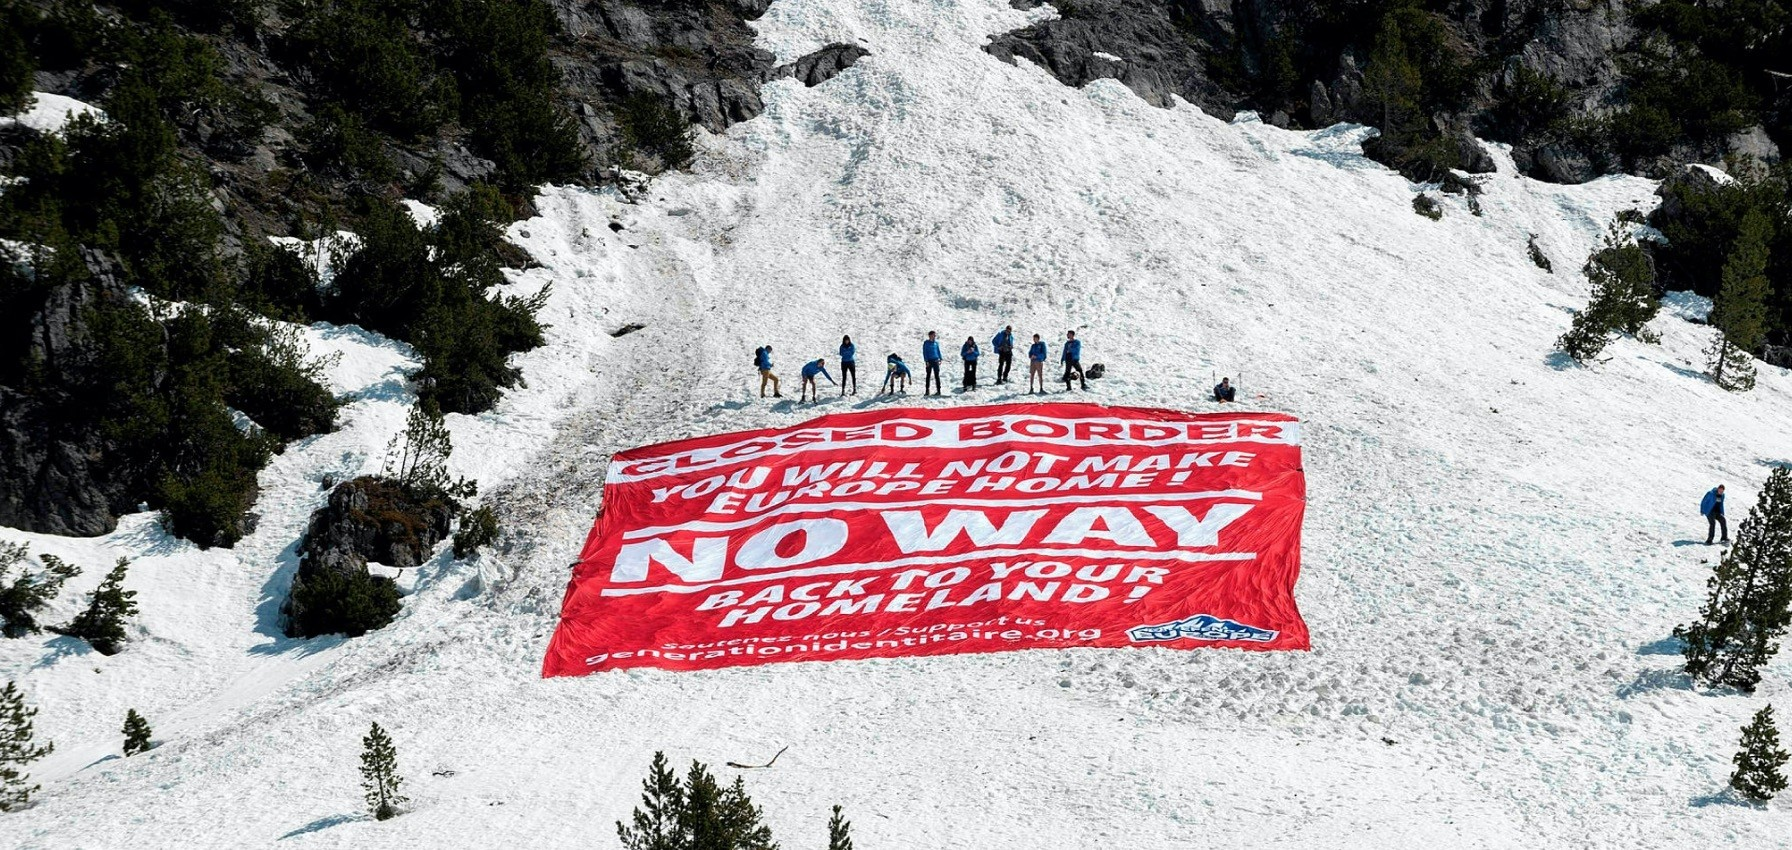 Far-right activists conduct an operation to control access of migrants, Nevache, the French-Italian border, April 21.